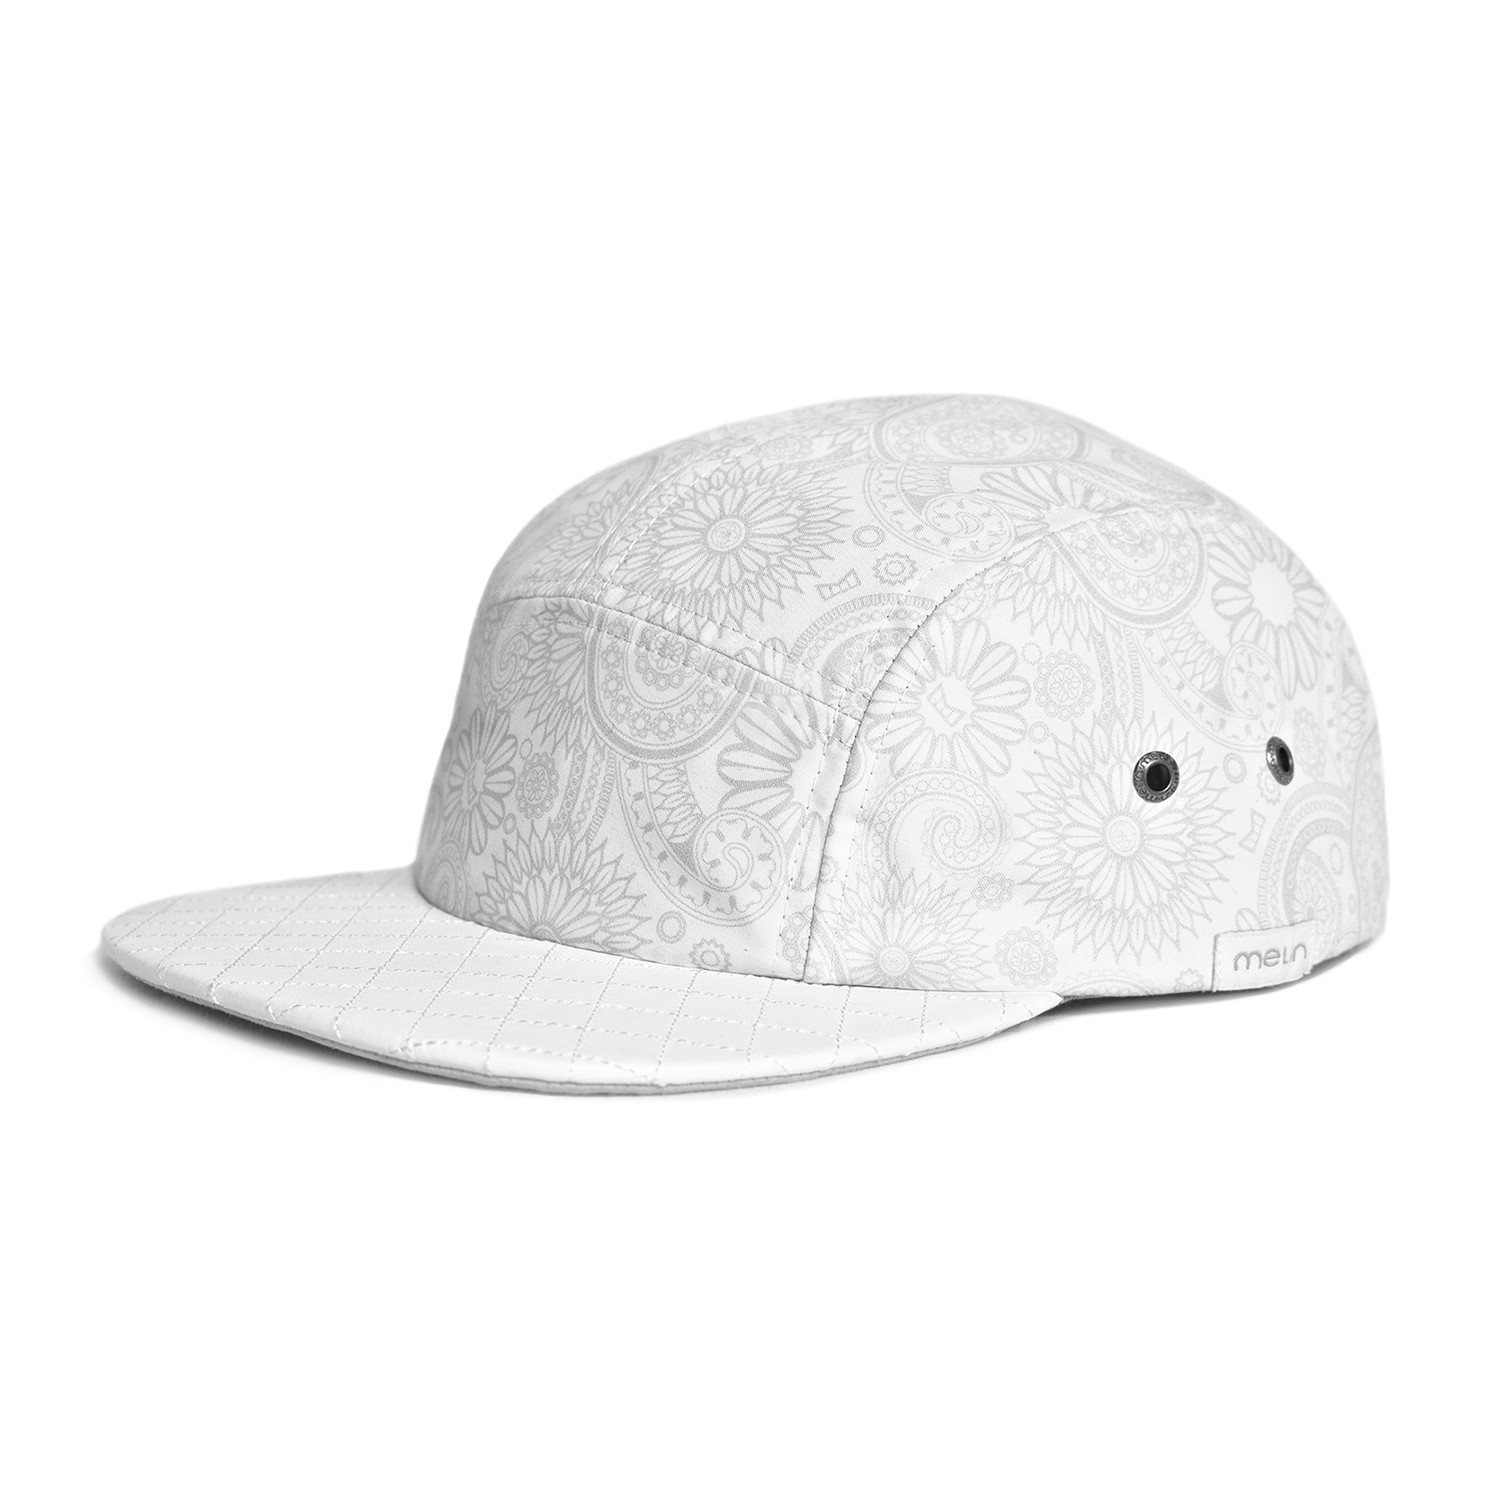 The Intrigue 5-Panel Hat    White - Melin Brand - Touch of Modern 2d2114cedb17